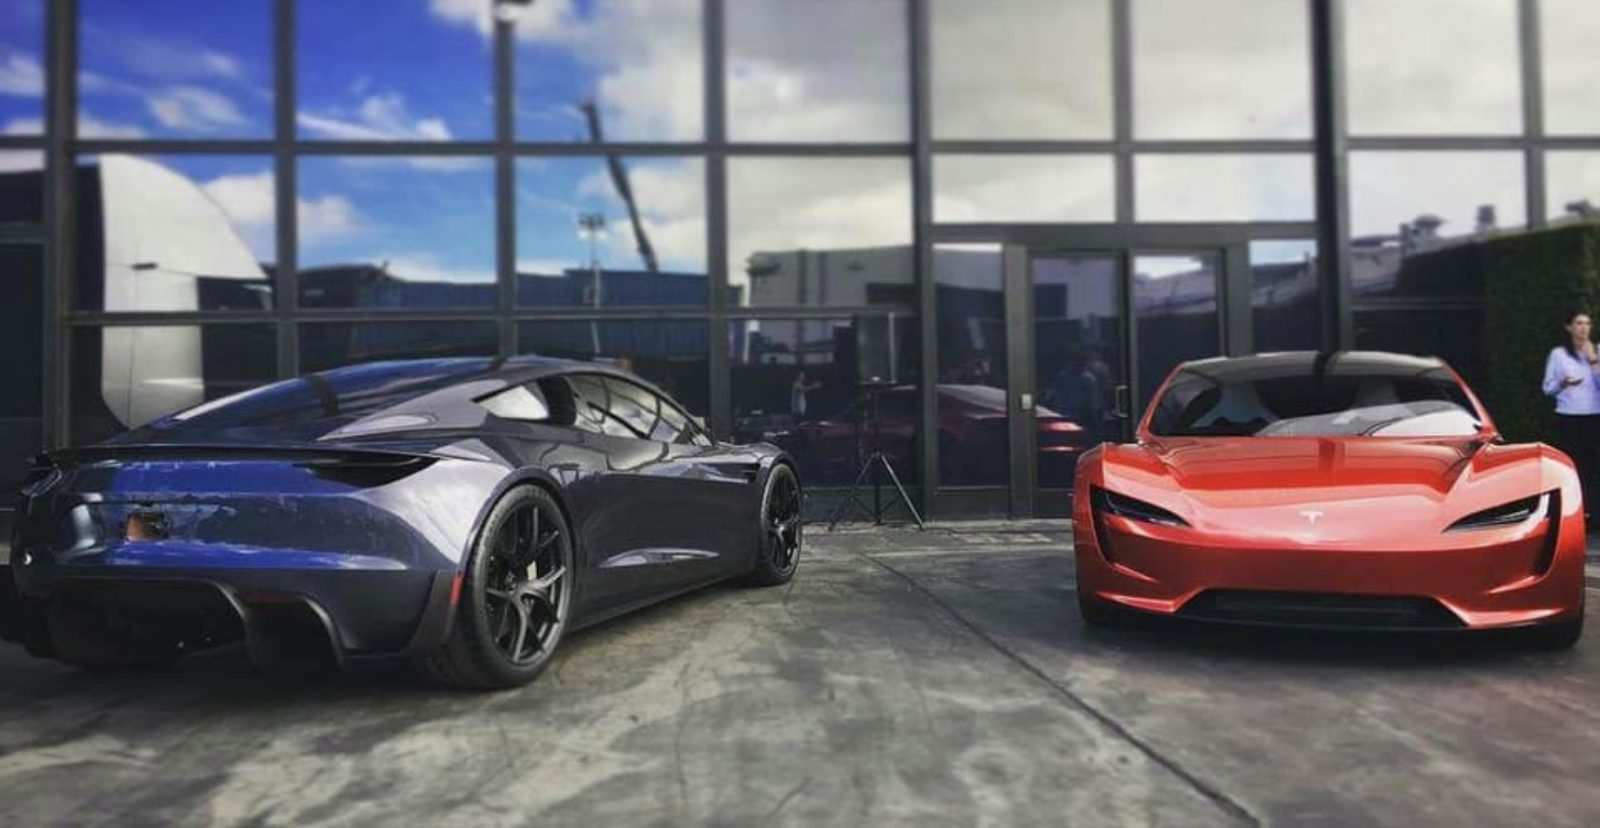 32 New 2020 Tesla Roadster 0 60 Review And Release Date